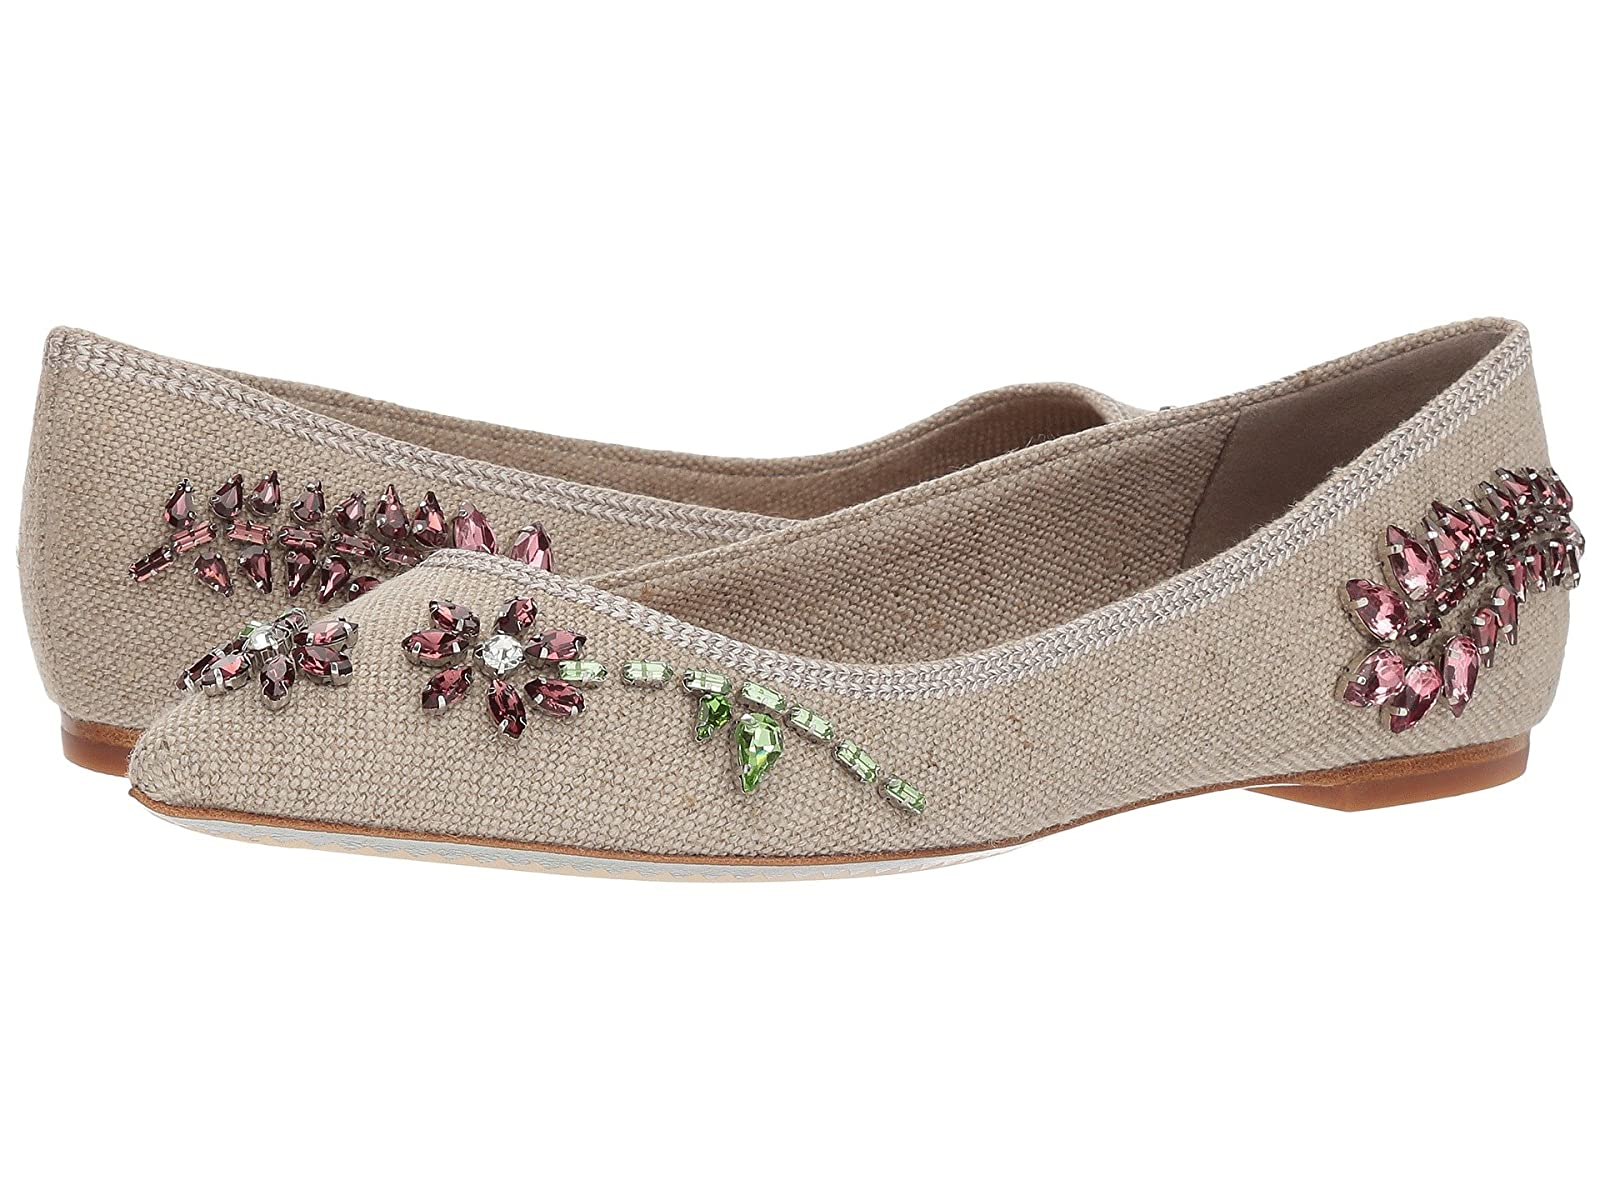 Tory Burch Meadow Embellished FlatAtmospheric grades have affordable shoes